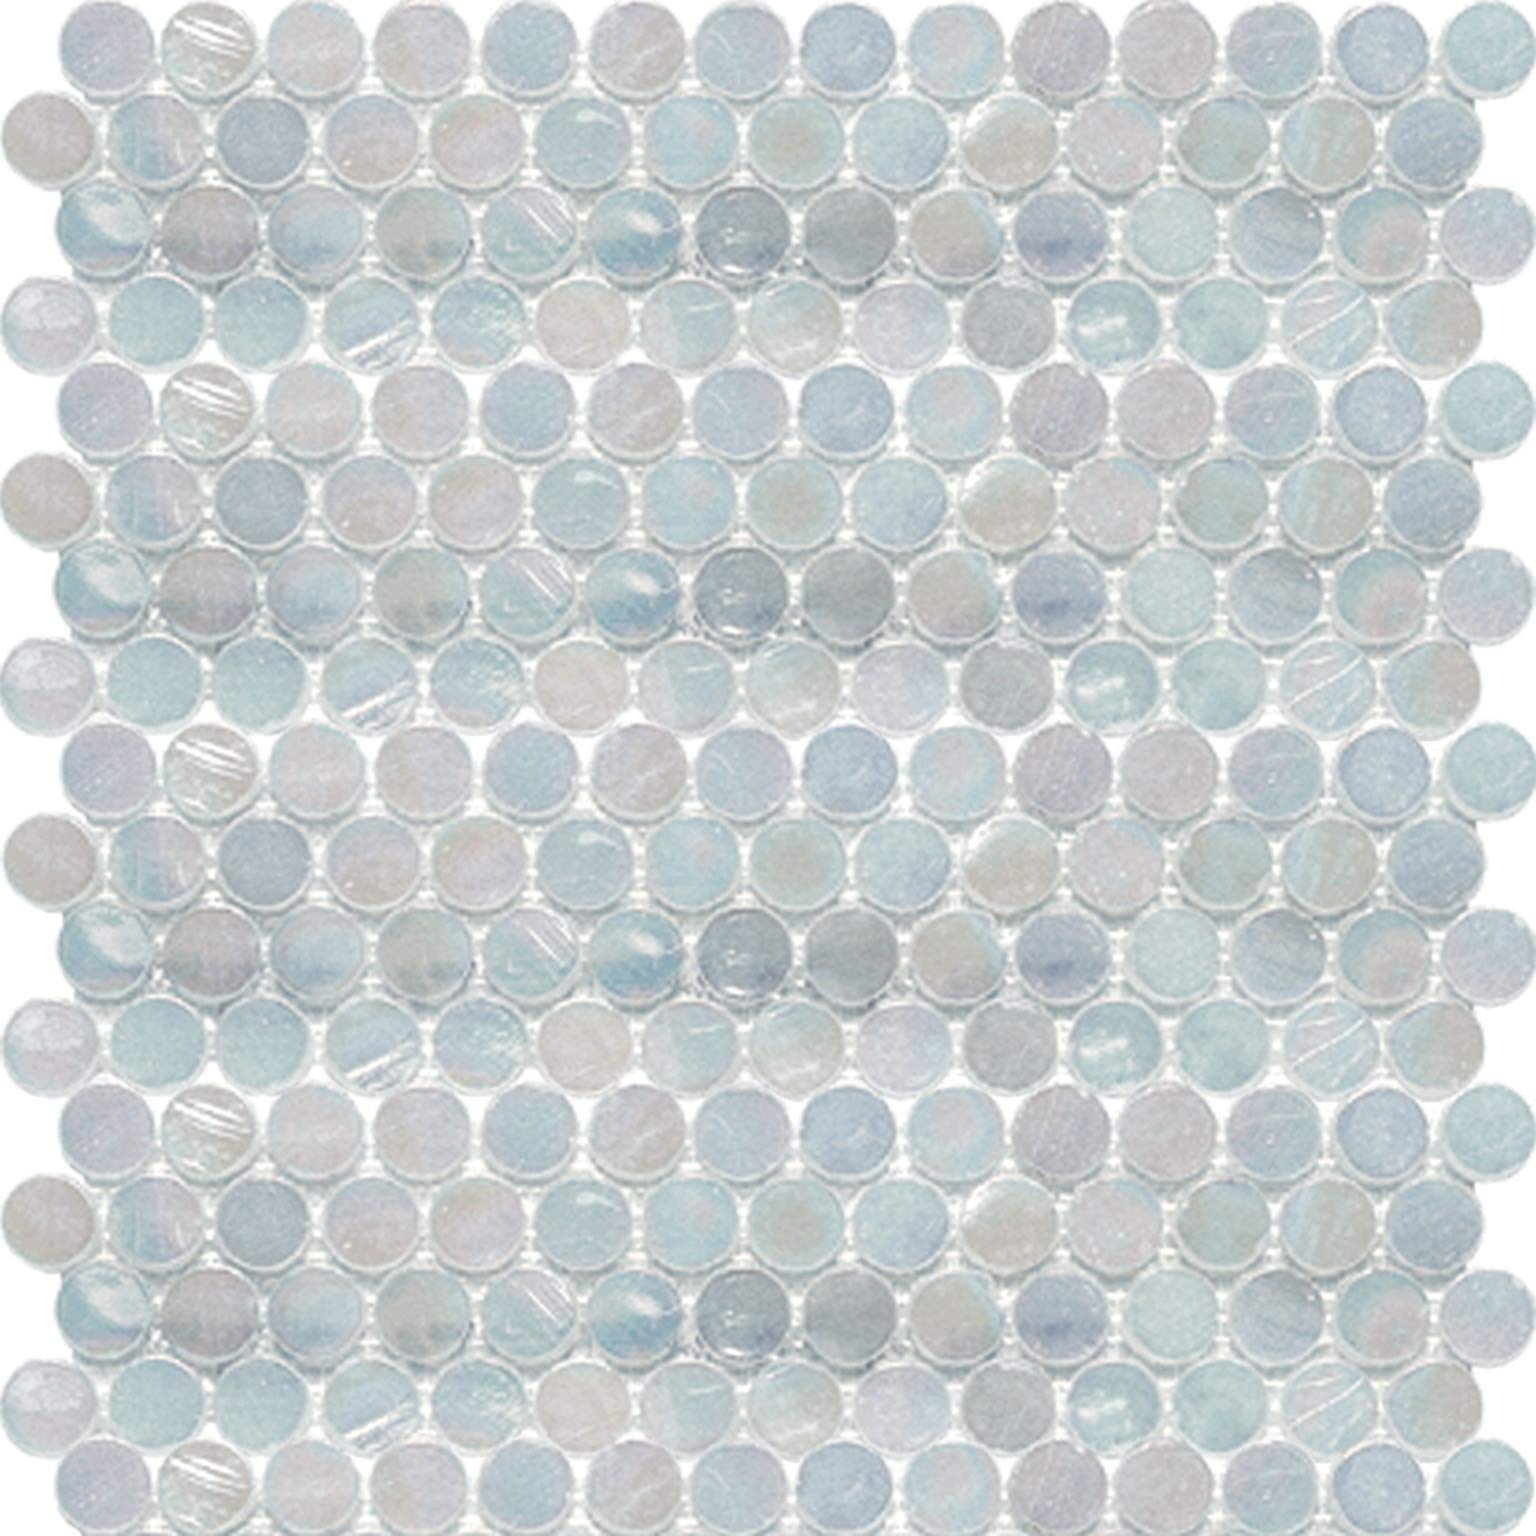 White Oyster Shell Penny Round Glass Mosaic by Squarefeet Depot (Image #1)